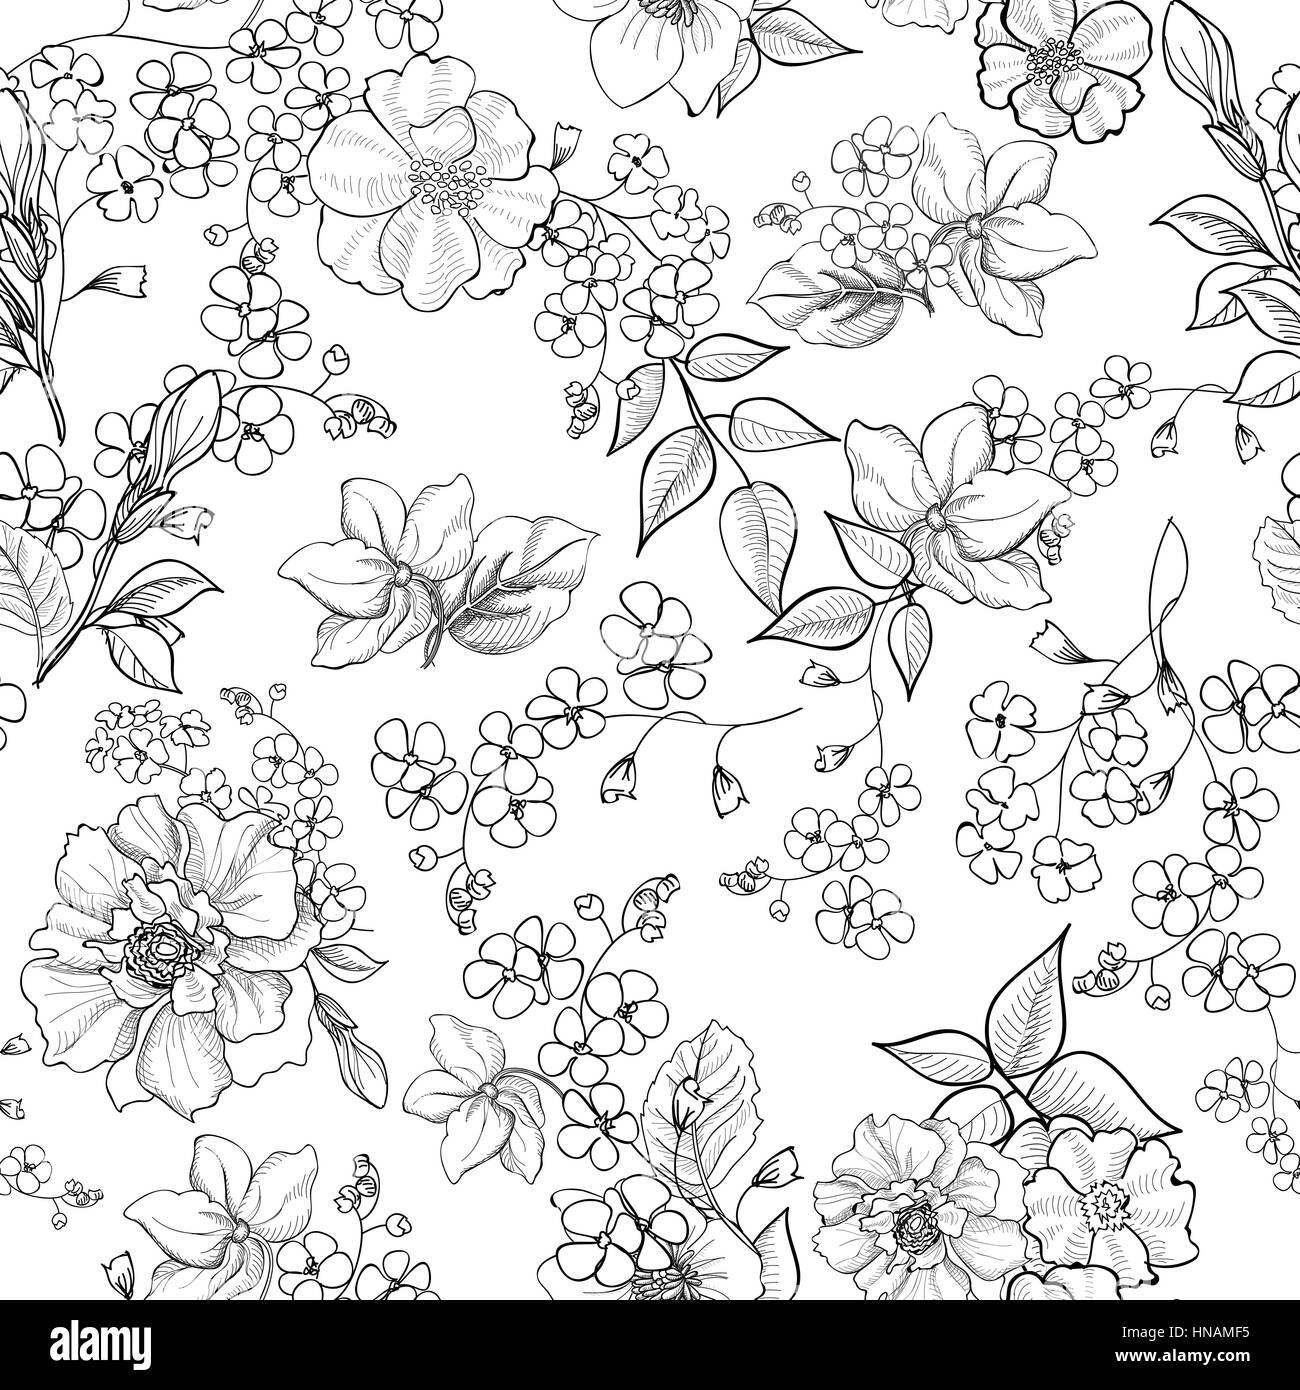 Floral seamless background. Decorative flower pattern. Floral seamless texture with flowers. - Stock Image